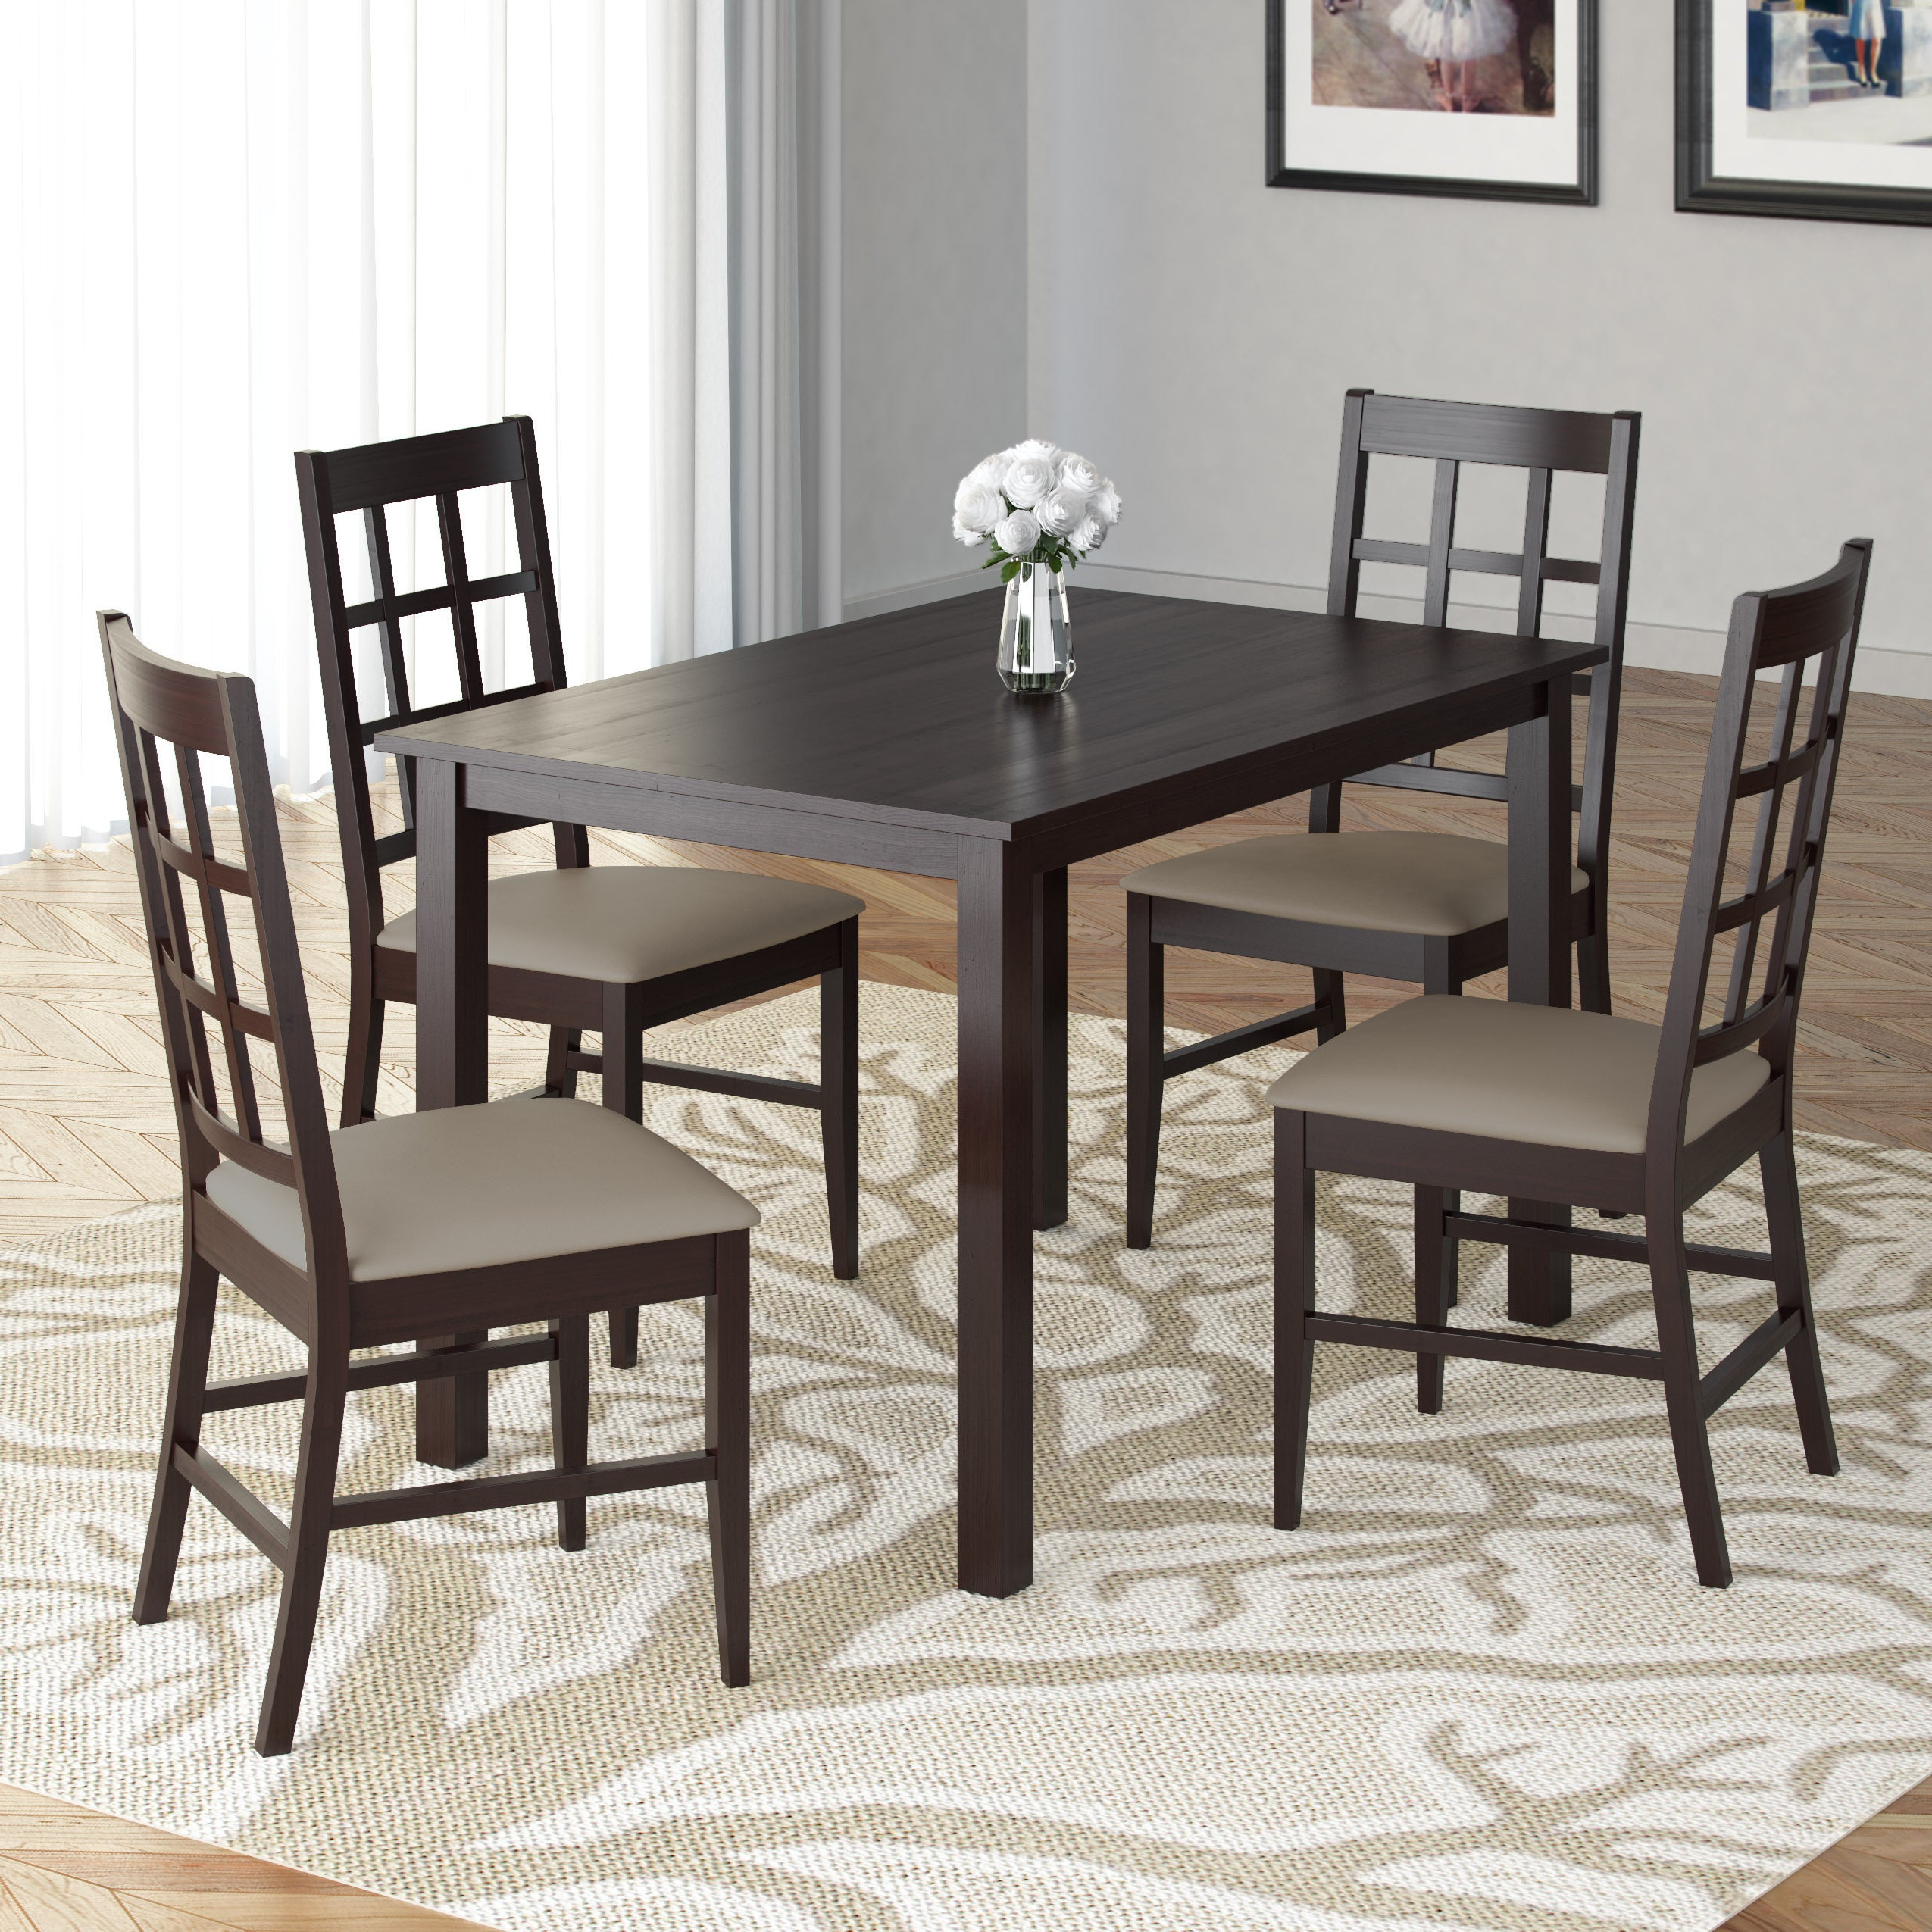 Atwood Transitional Square Dining Tables Inside Most Up To Date Atwood 5pc Dining Set With Taupe Stone Leatherette Seats (View 5 of 30)